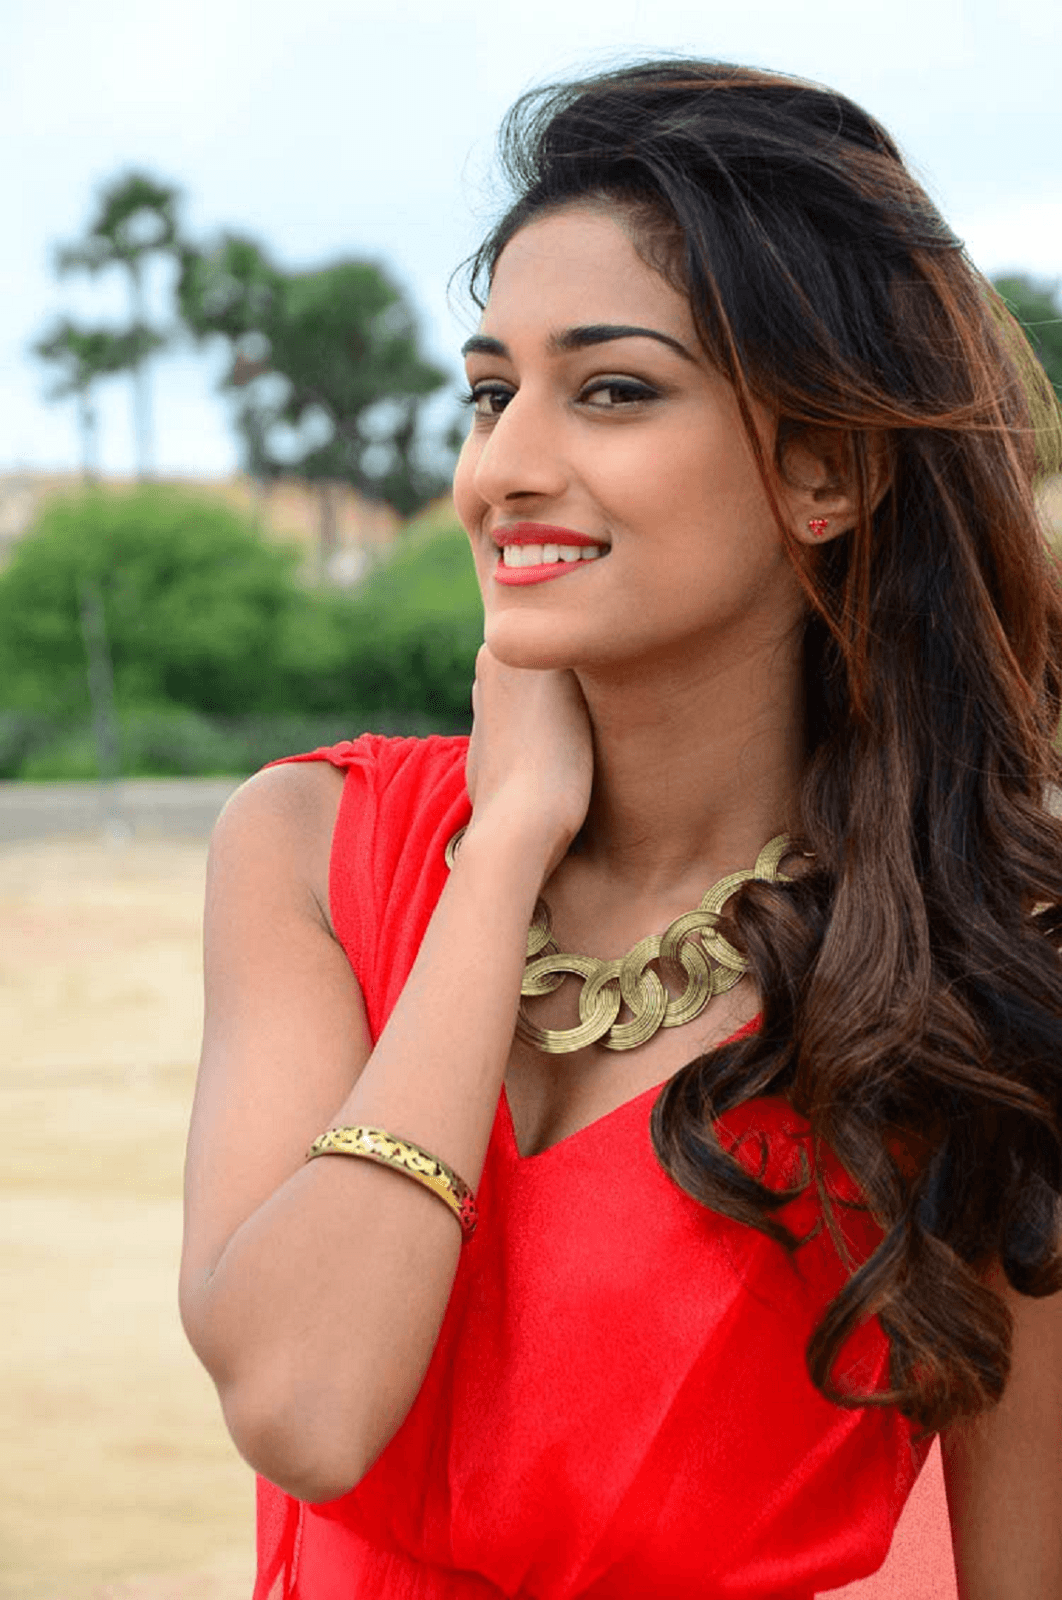 south indian actress wallpapers wallpaper cave south indian actress wallpapers